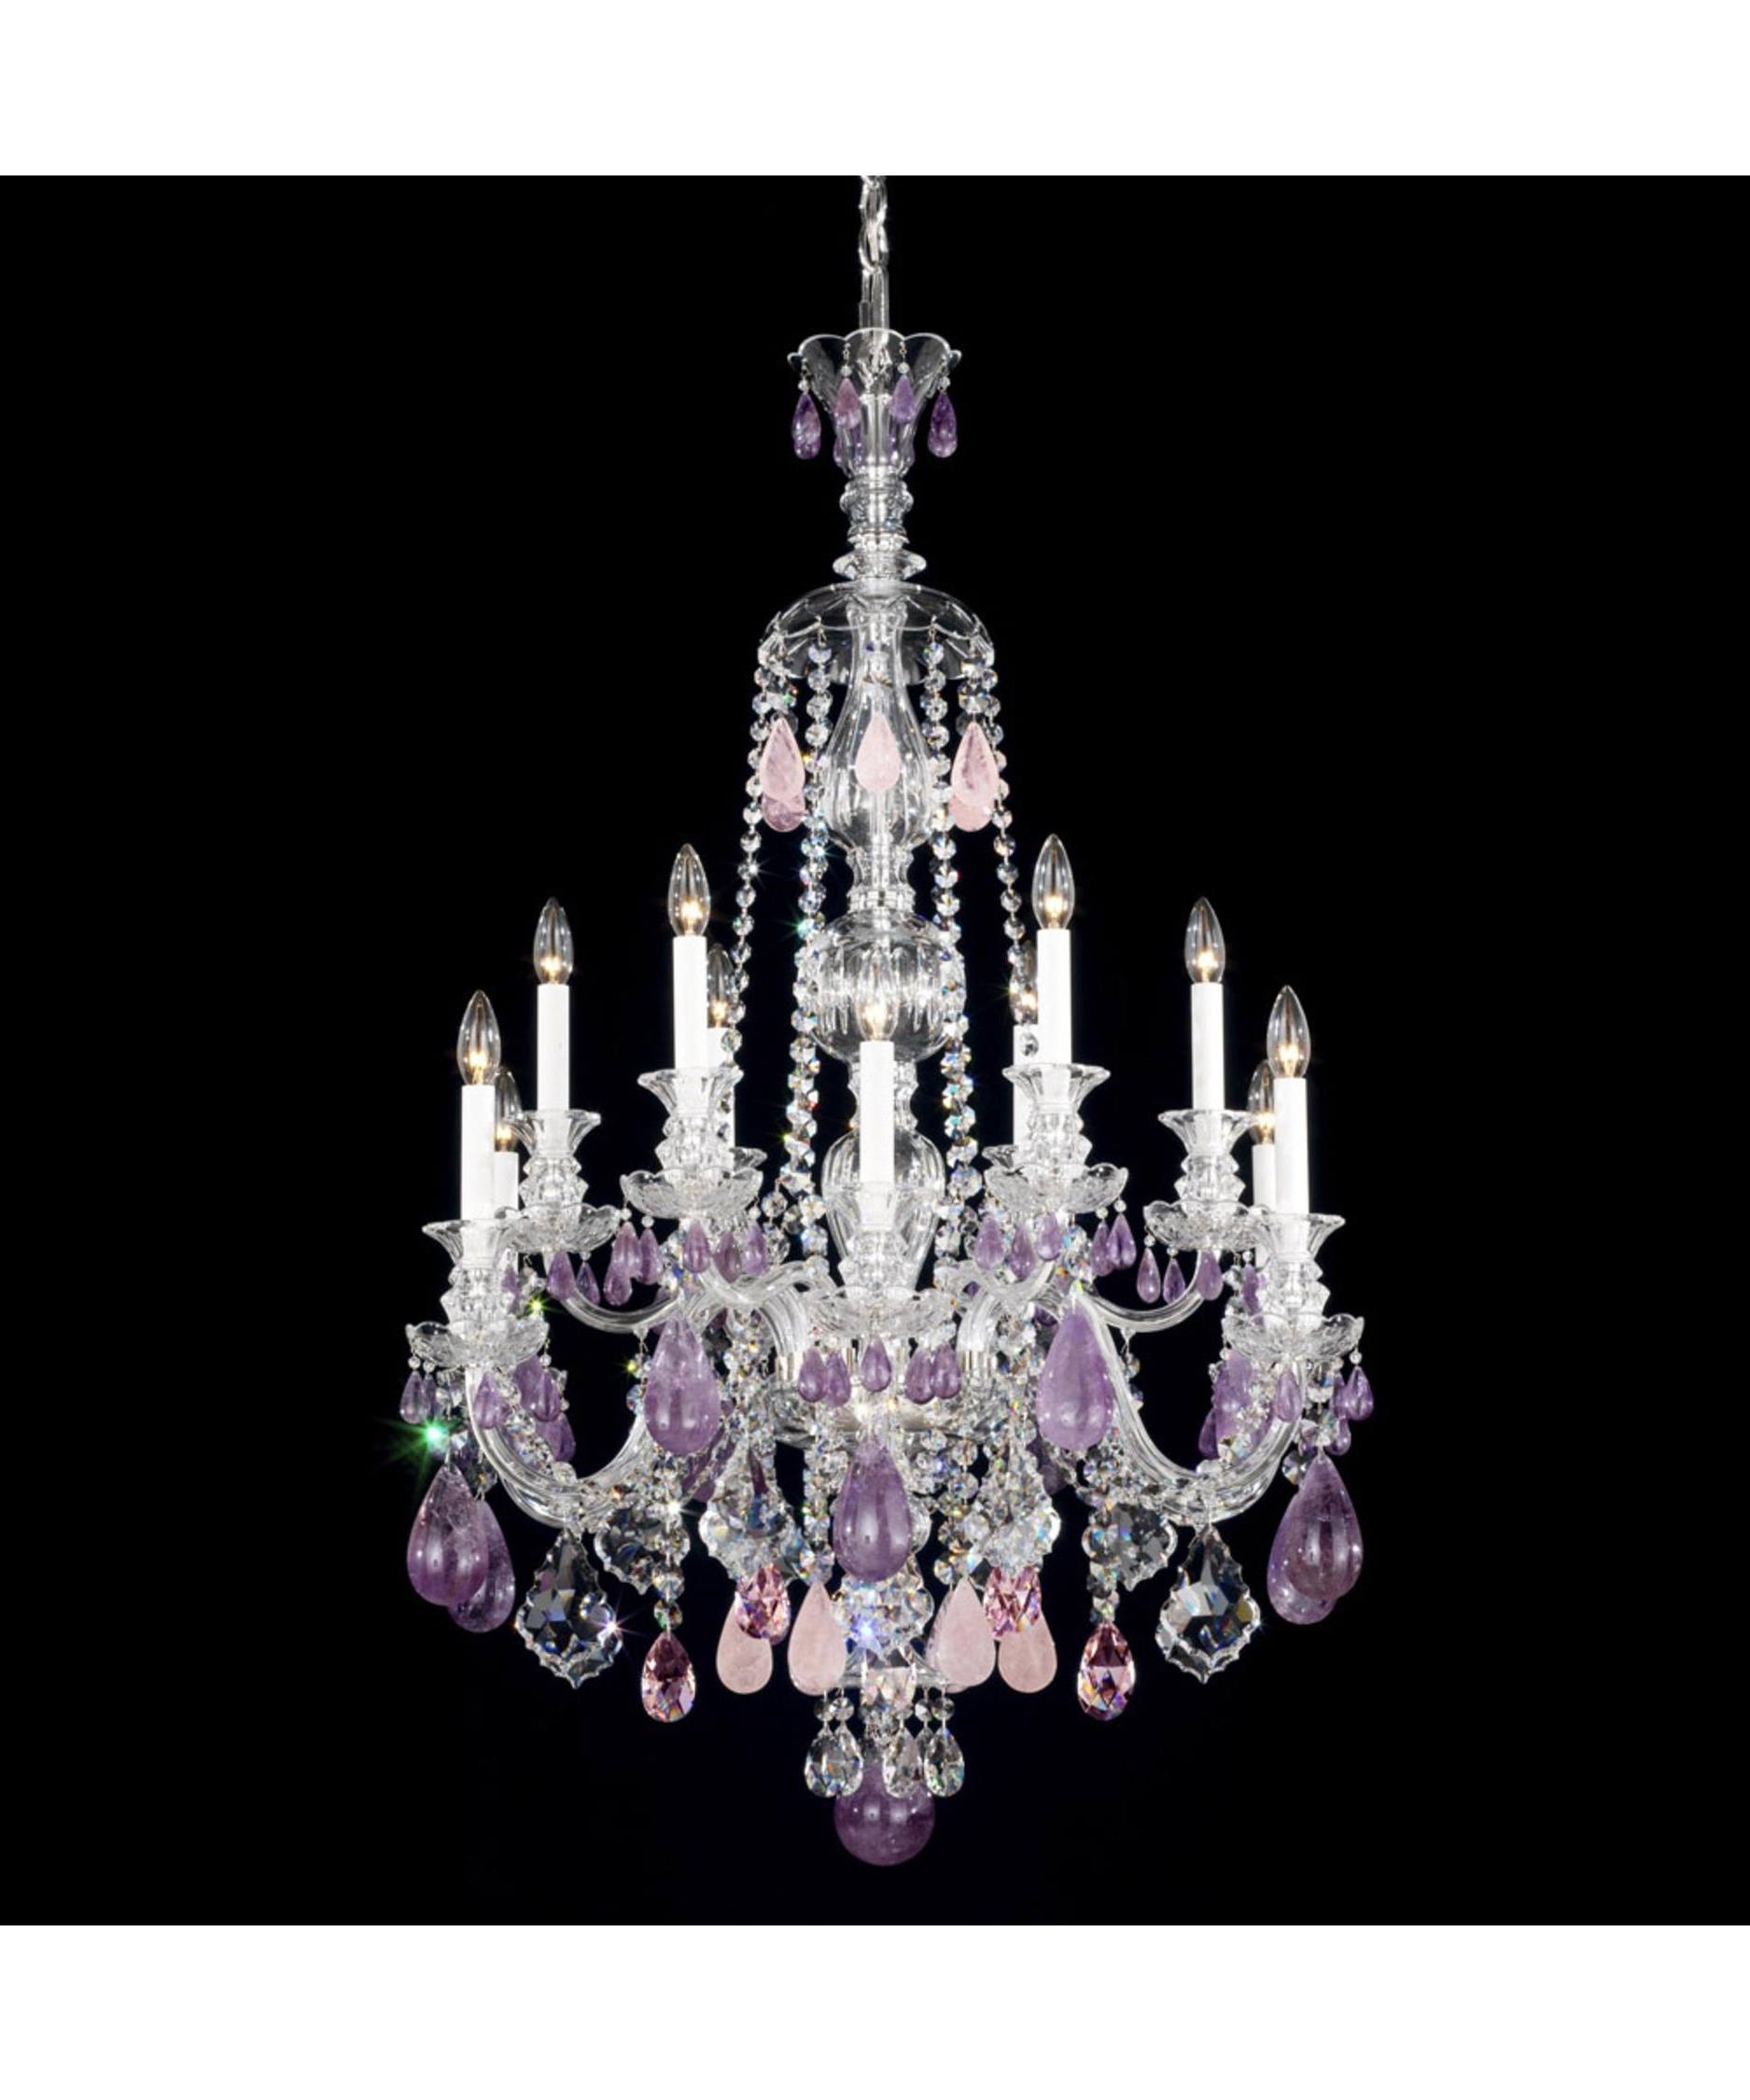 Purple Crystal Chandelier Lights With 2018 Schonbek 5508 Hamilton Rock Crystal 30 Inch Wide 12 Light Chandelier (View 3 of 20)